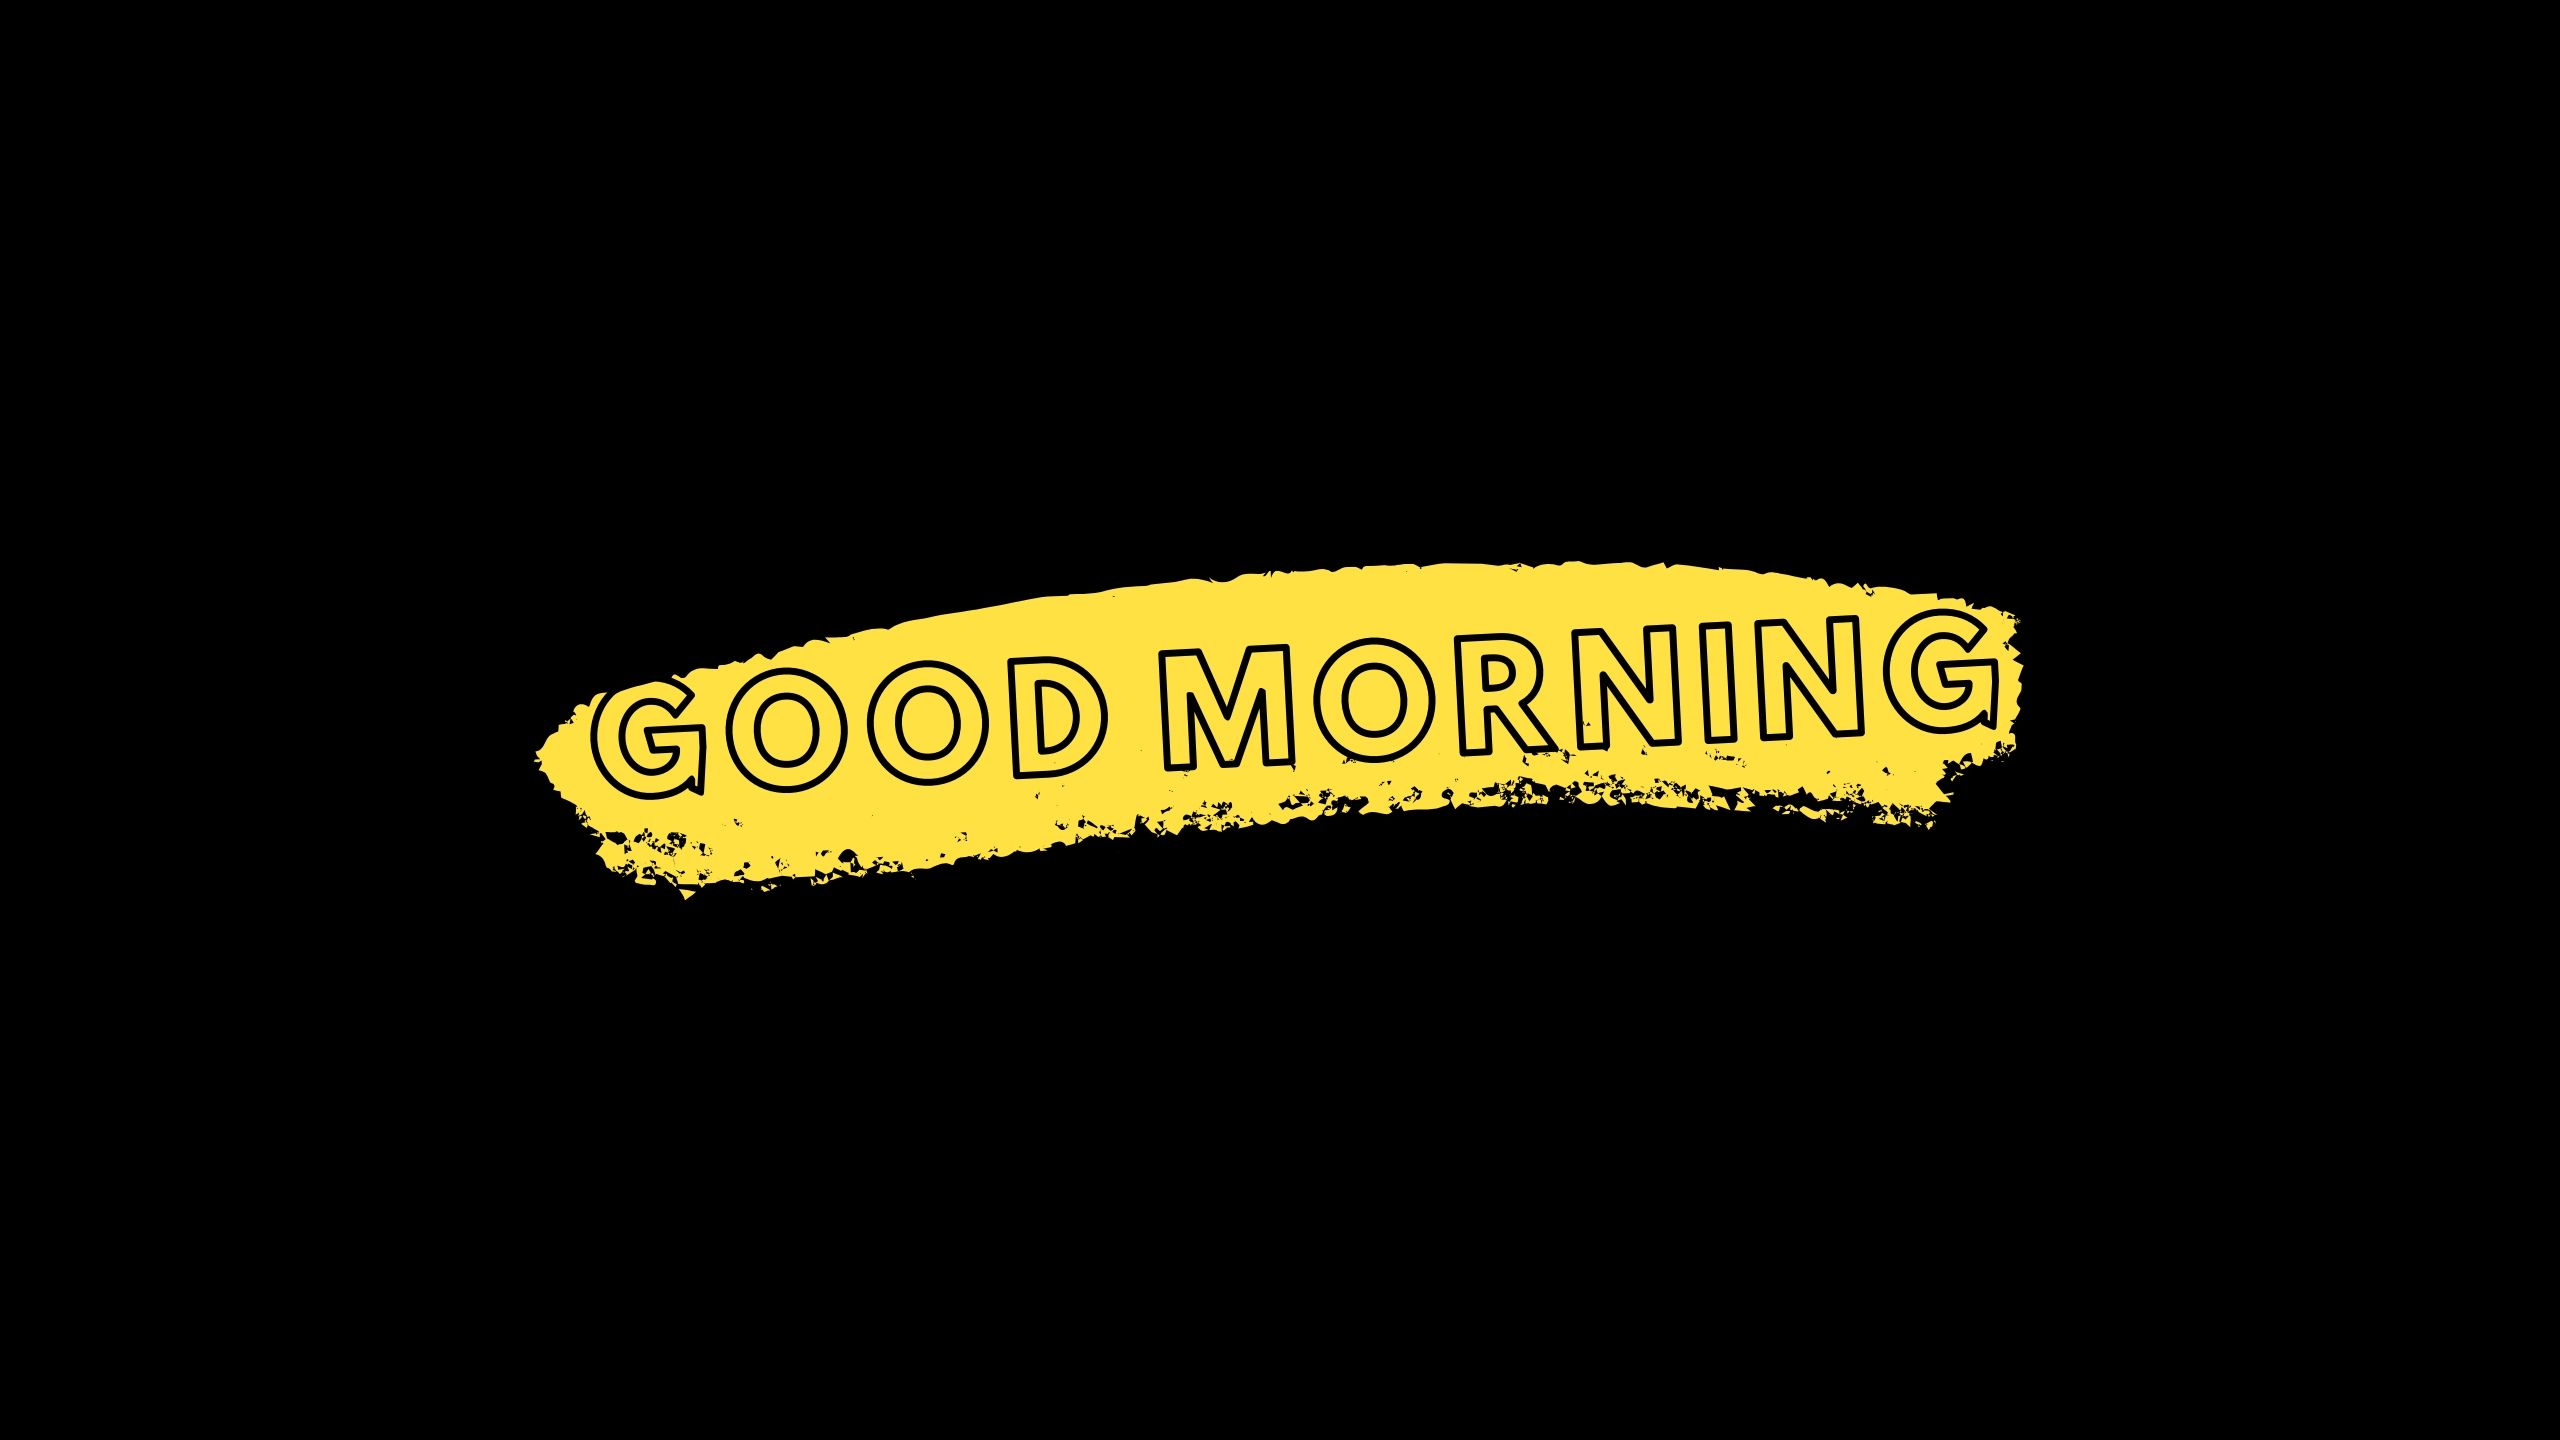 Good Morning Image Black Yellow full HD free download.